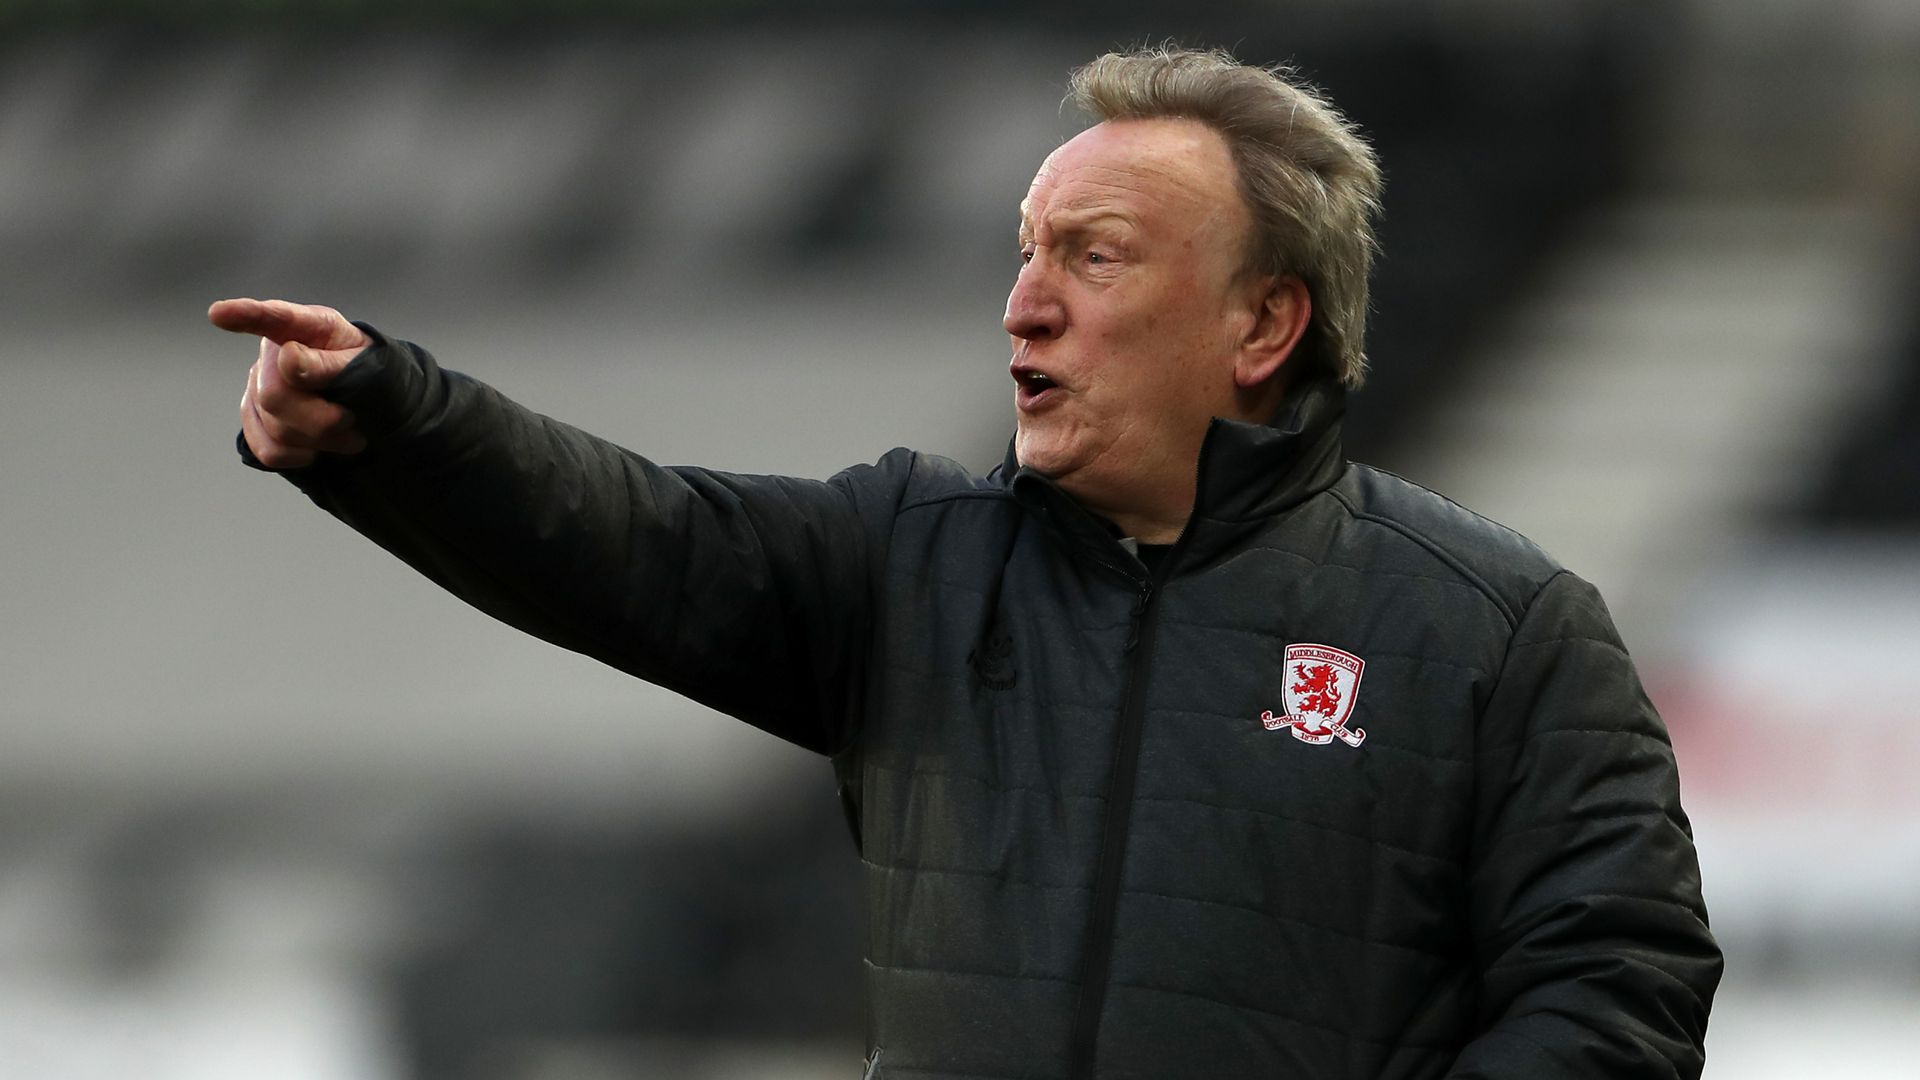 Warnock laughs off comment about Cooper's father